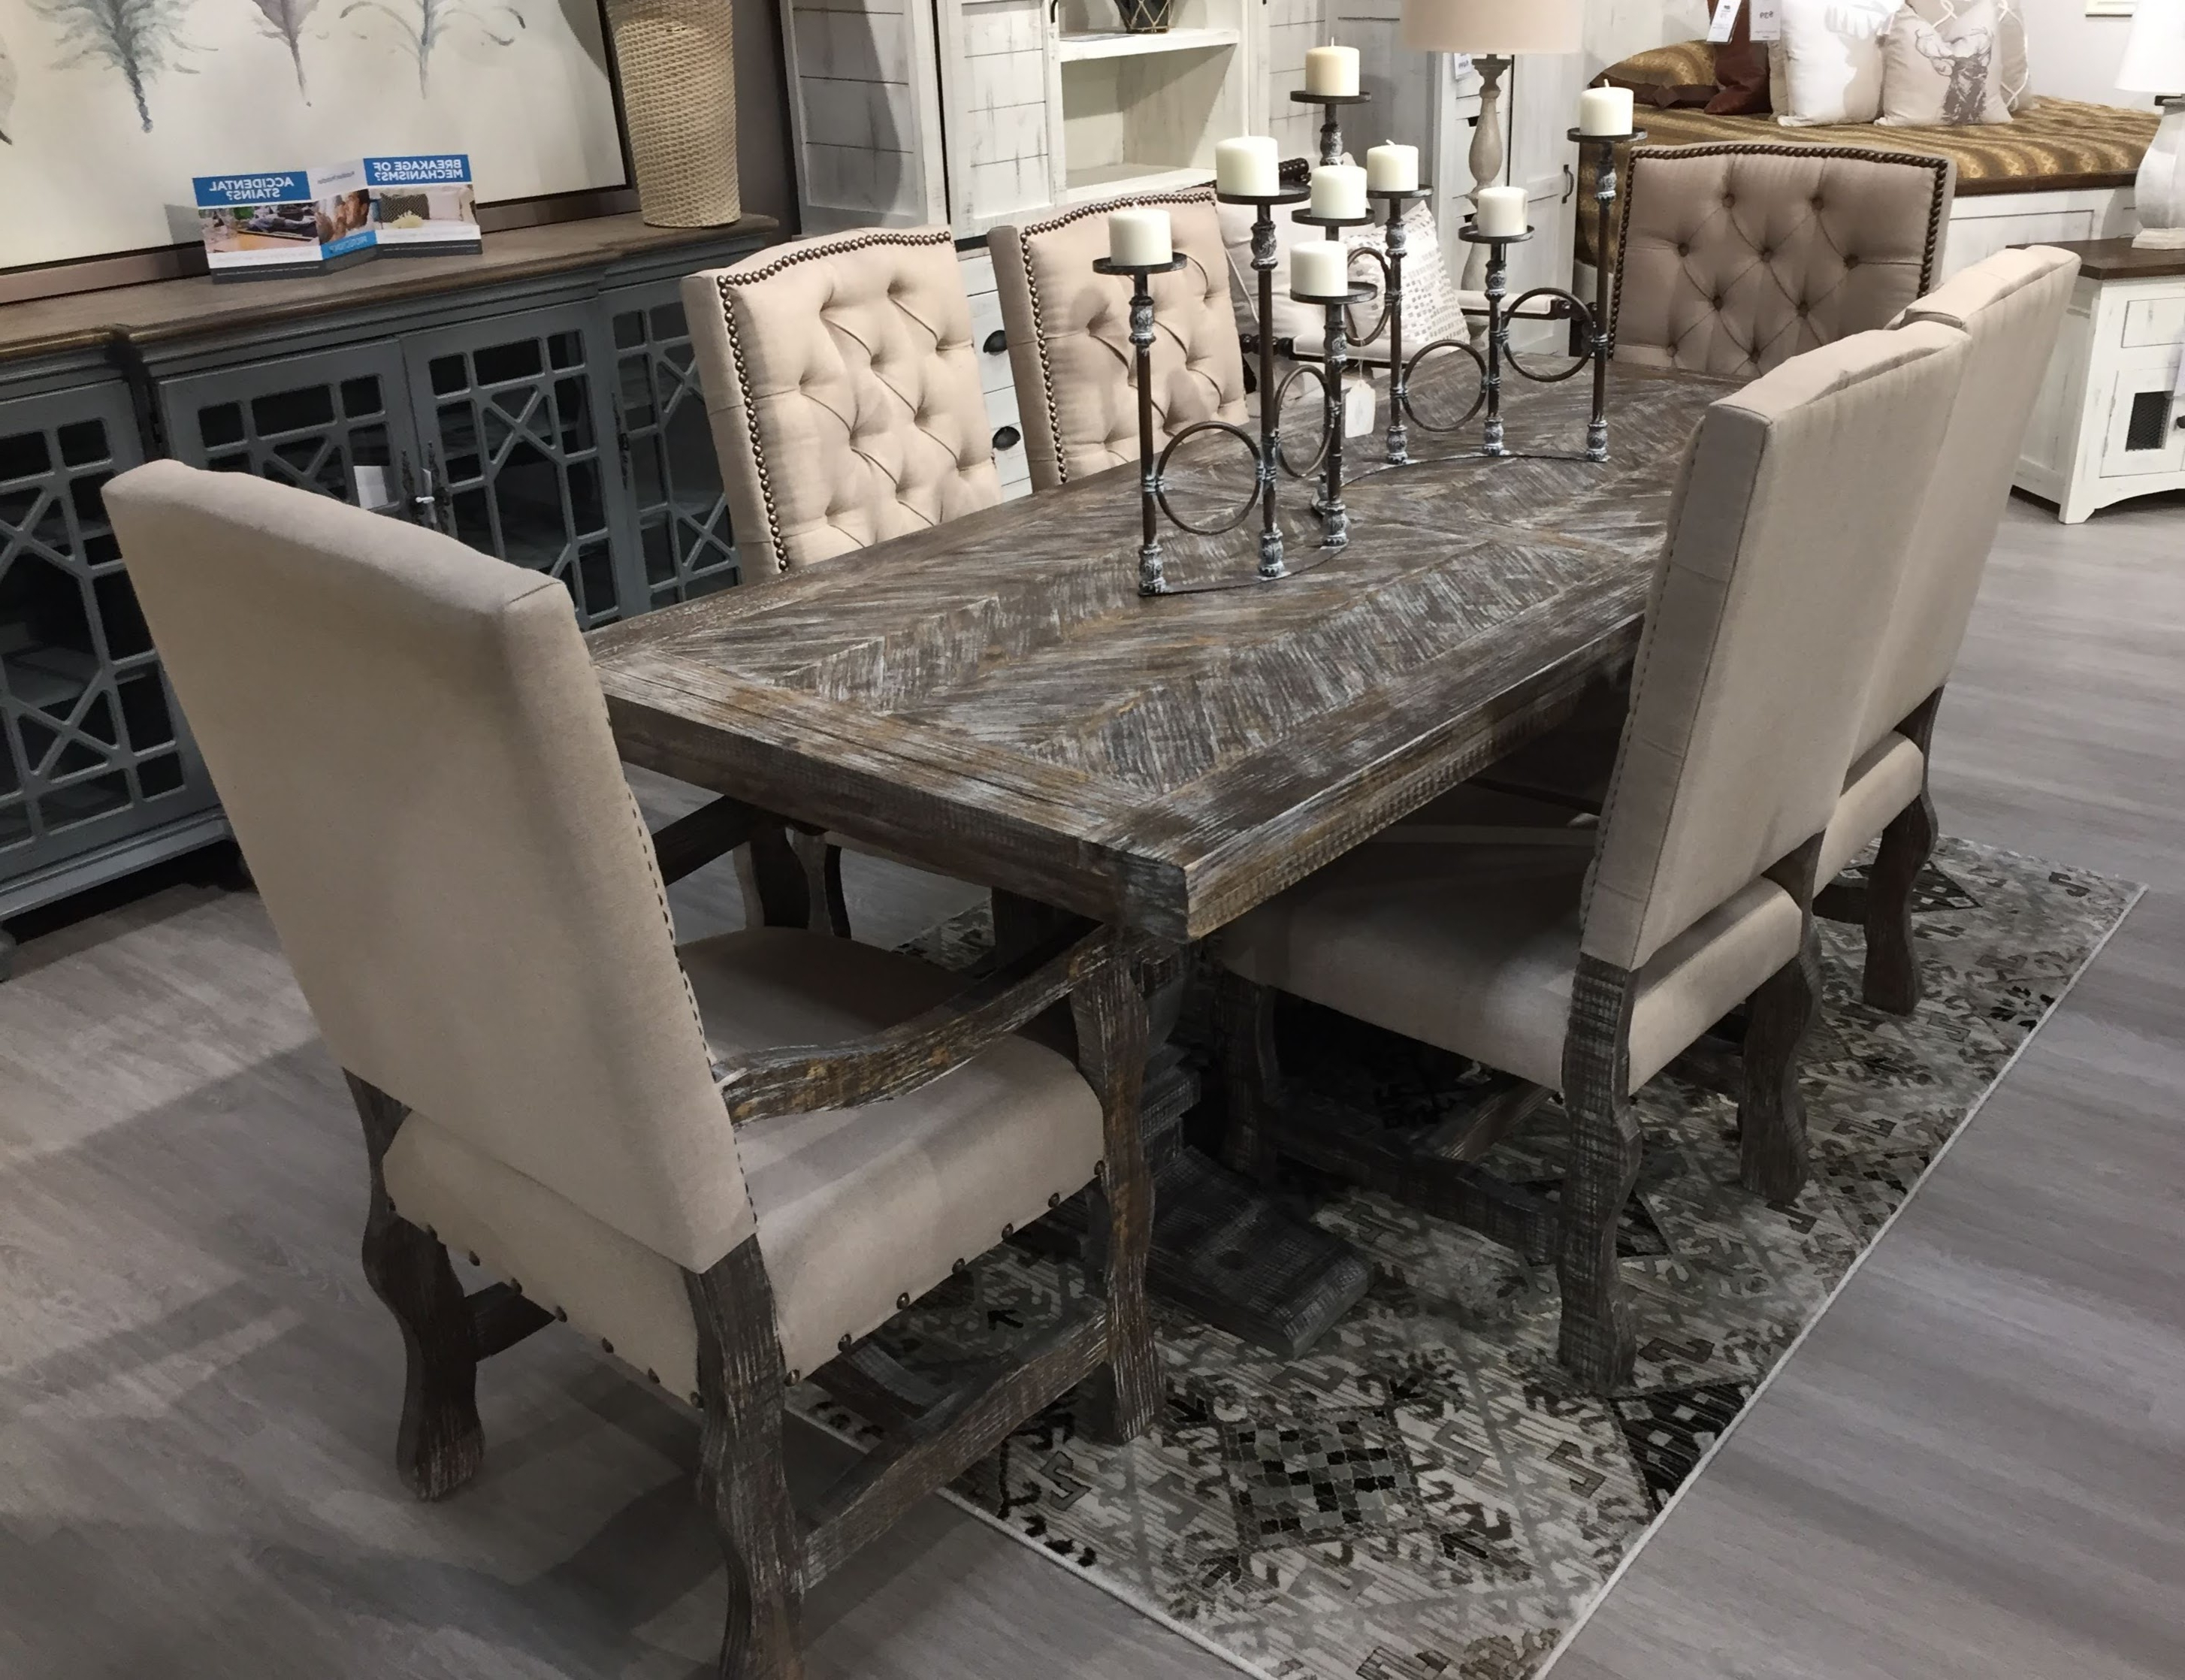 Exclusive Furniture Intended For 2020 Sheetz 3 Piece Counter Height Dining Sets (View 11 of 25)